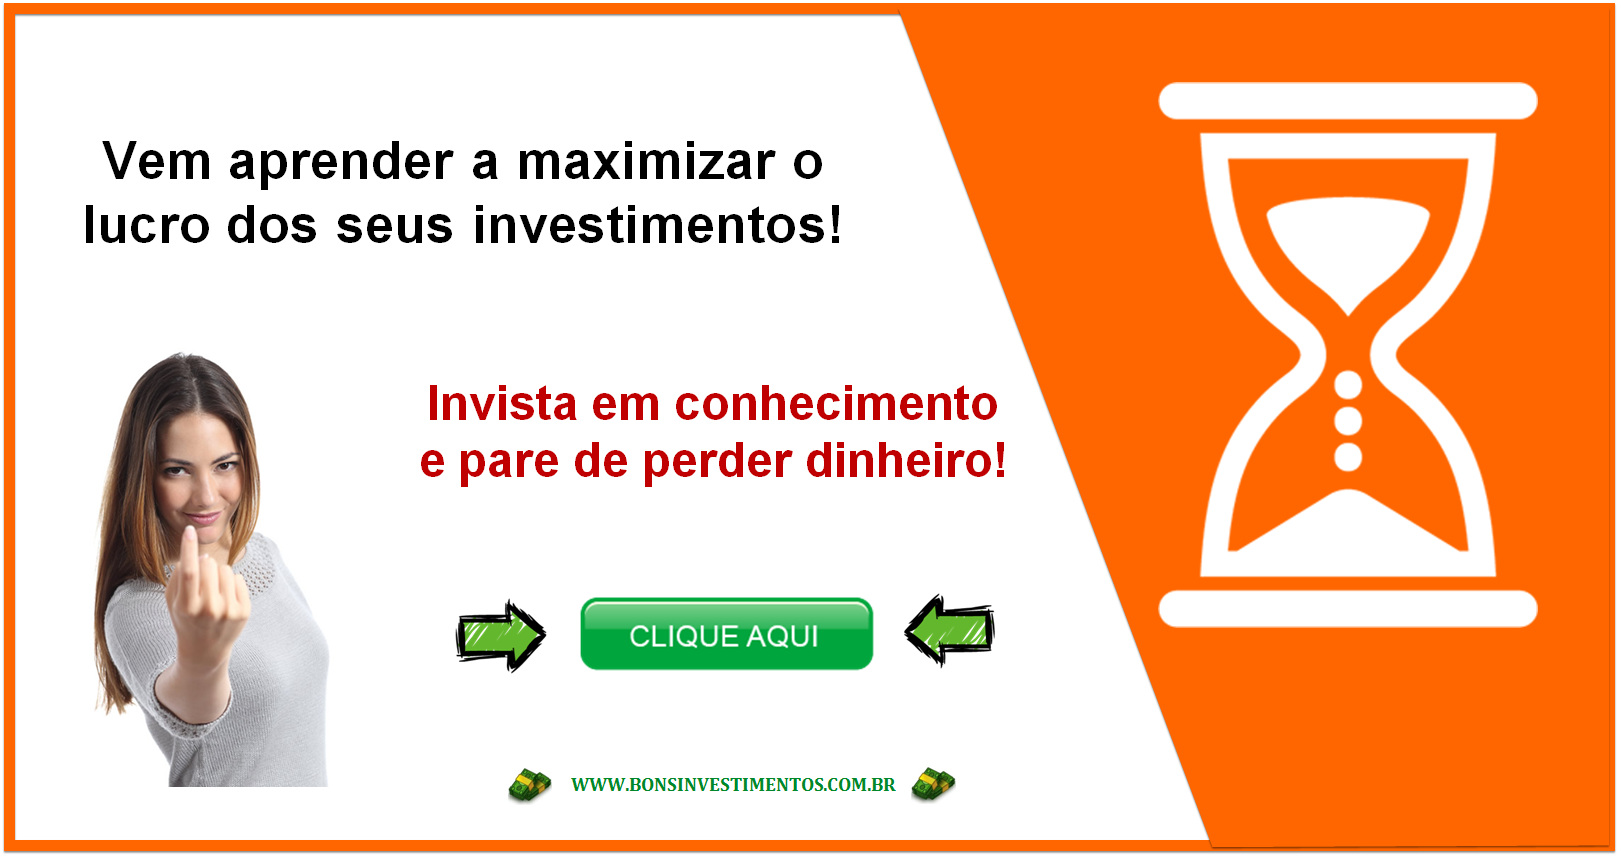 lci do banco itaú é boa